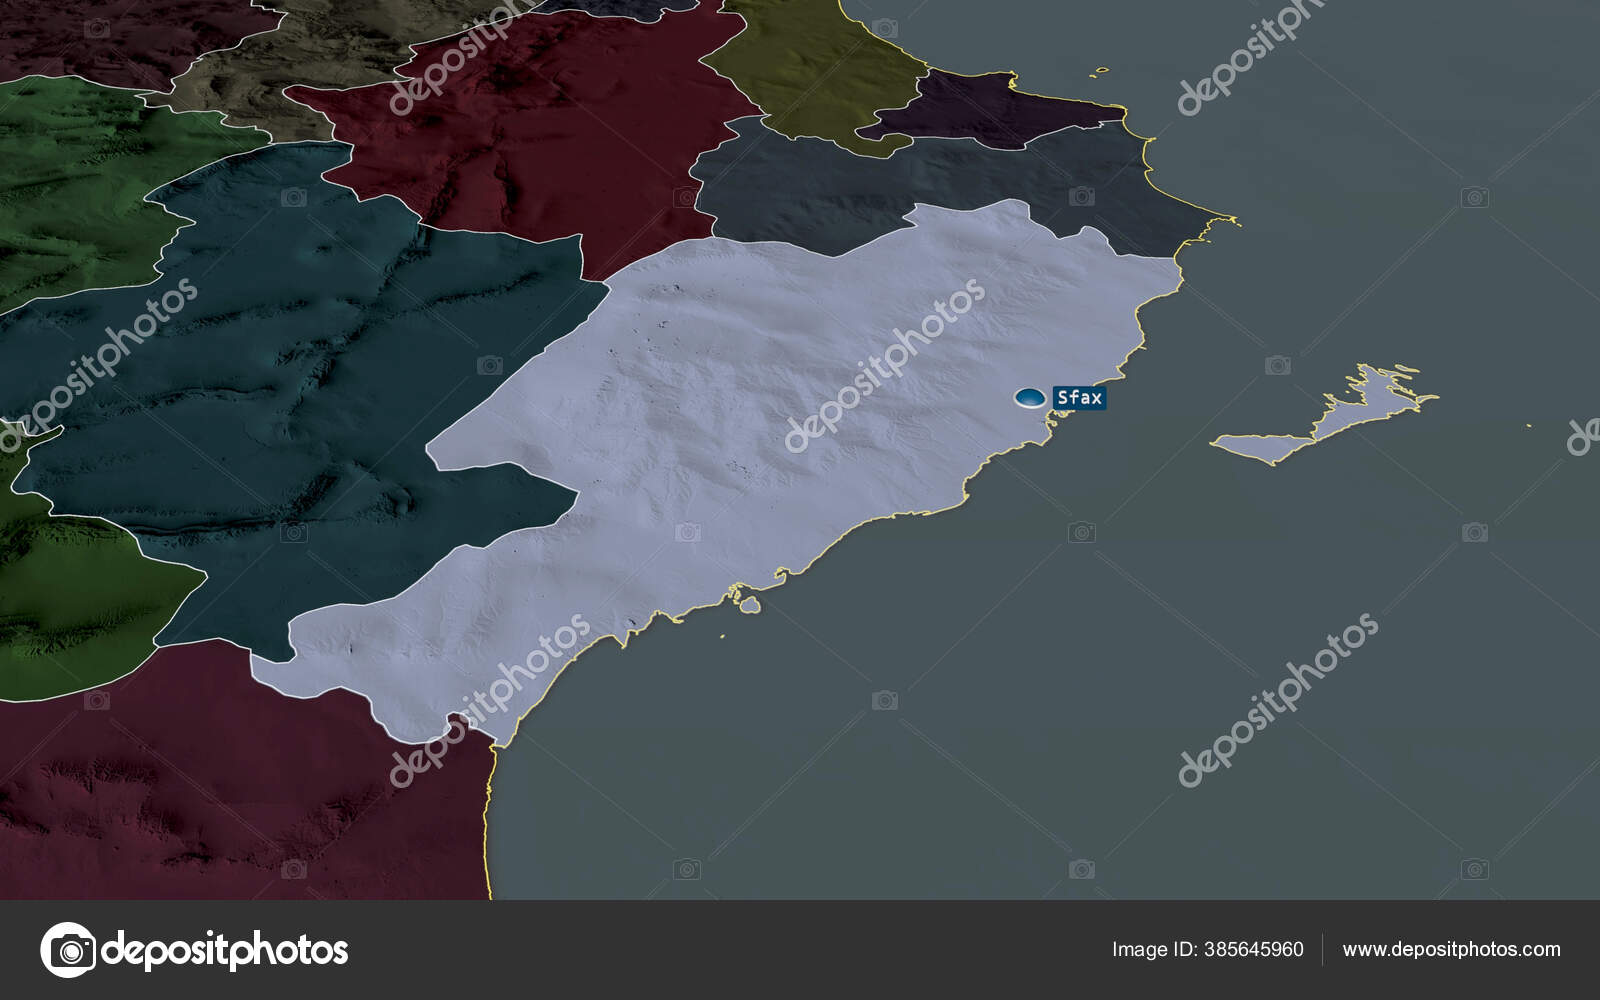 Picture of: Sfax Governorate Tunisia Zoomed Highlighted Capital Colored Bumped Map Administrative Stock Photo C Yarr65 385645960